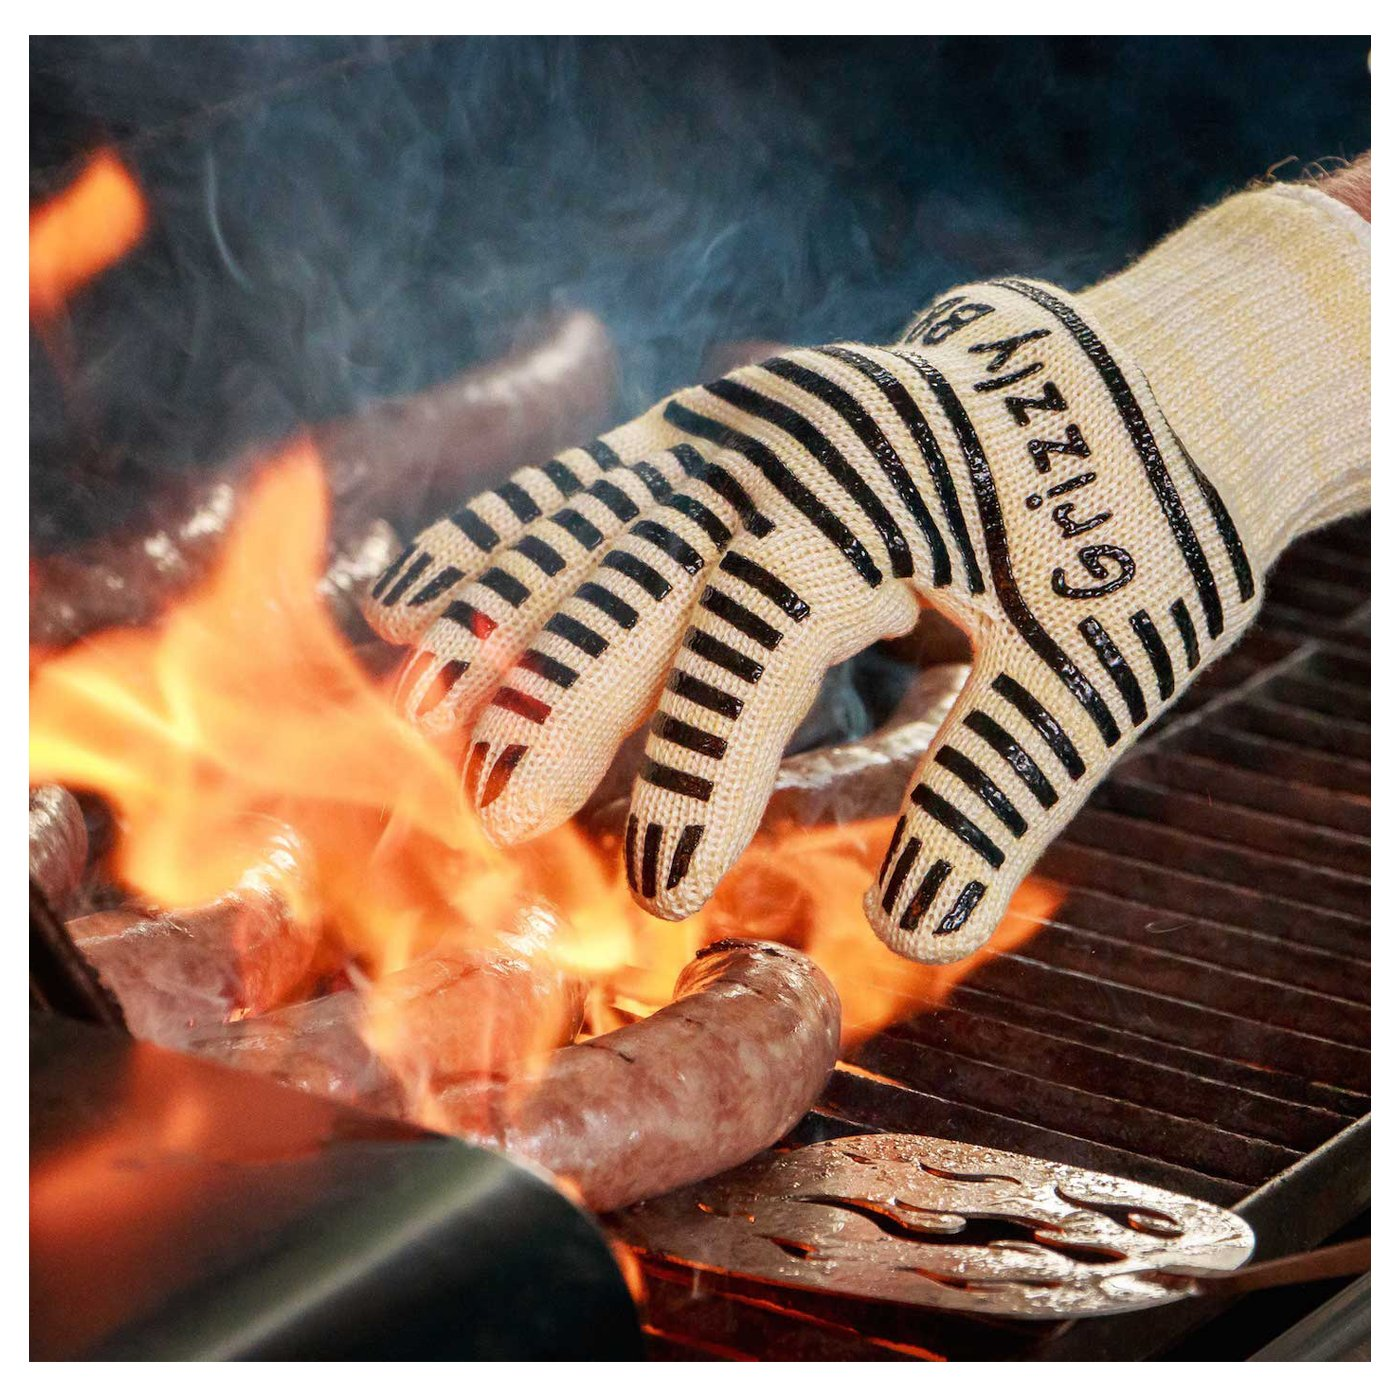 Fireplace Gloves - BBQ Cooking Gloves and Dutch Oven Mitts - Features Kevlar and Nomex Insulation for Maximum Fire and Heat Protection - For Outdoor Grilling and Kitchen Oven Safety Mitts - 100% Renewable Cotton Liner for Superior Comfort - For Use in Any High-heat Application, Including Military